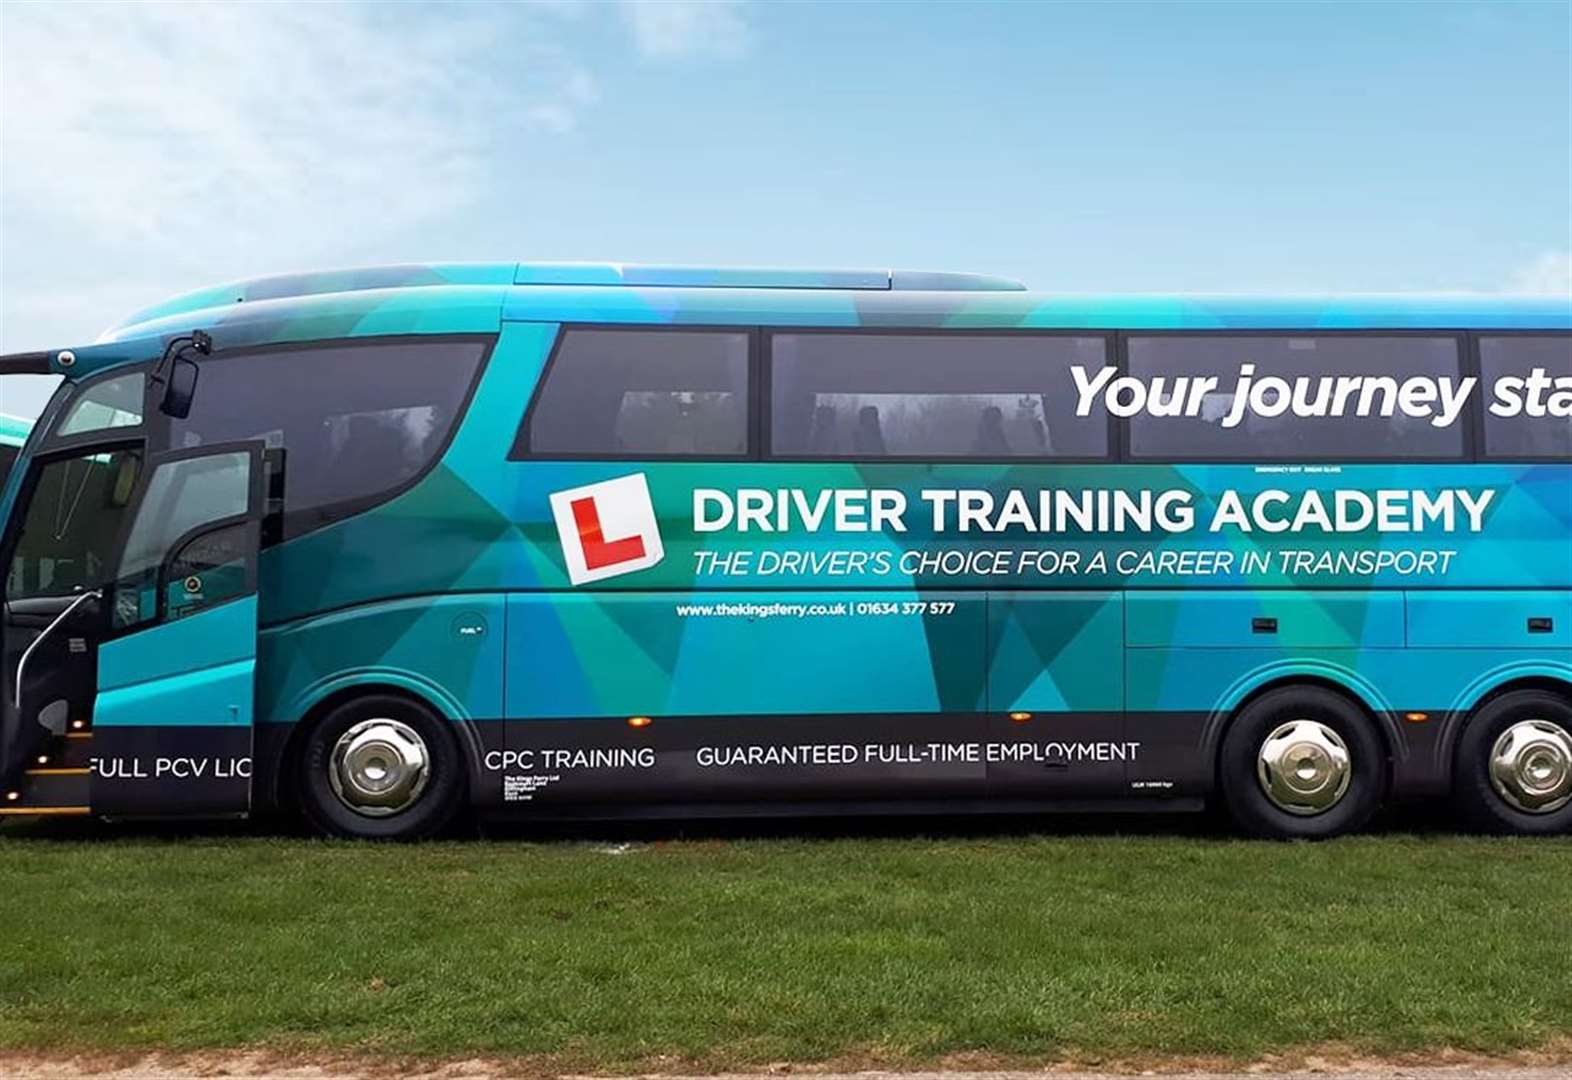 Coach company launches driver training academy